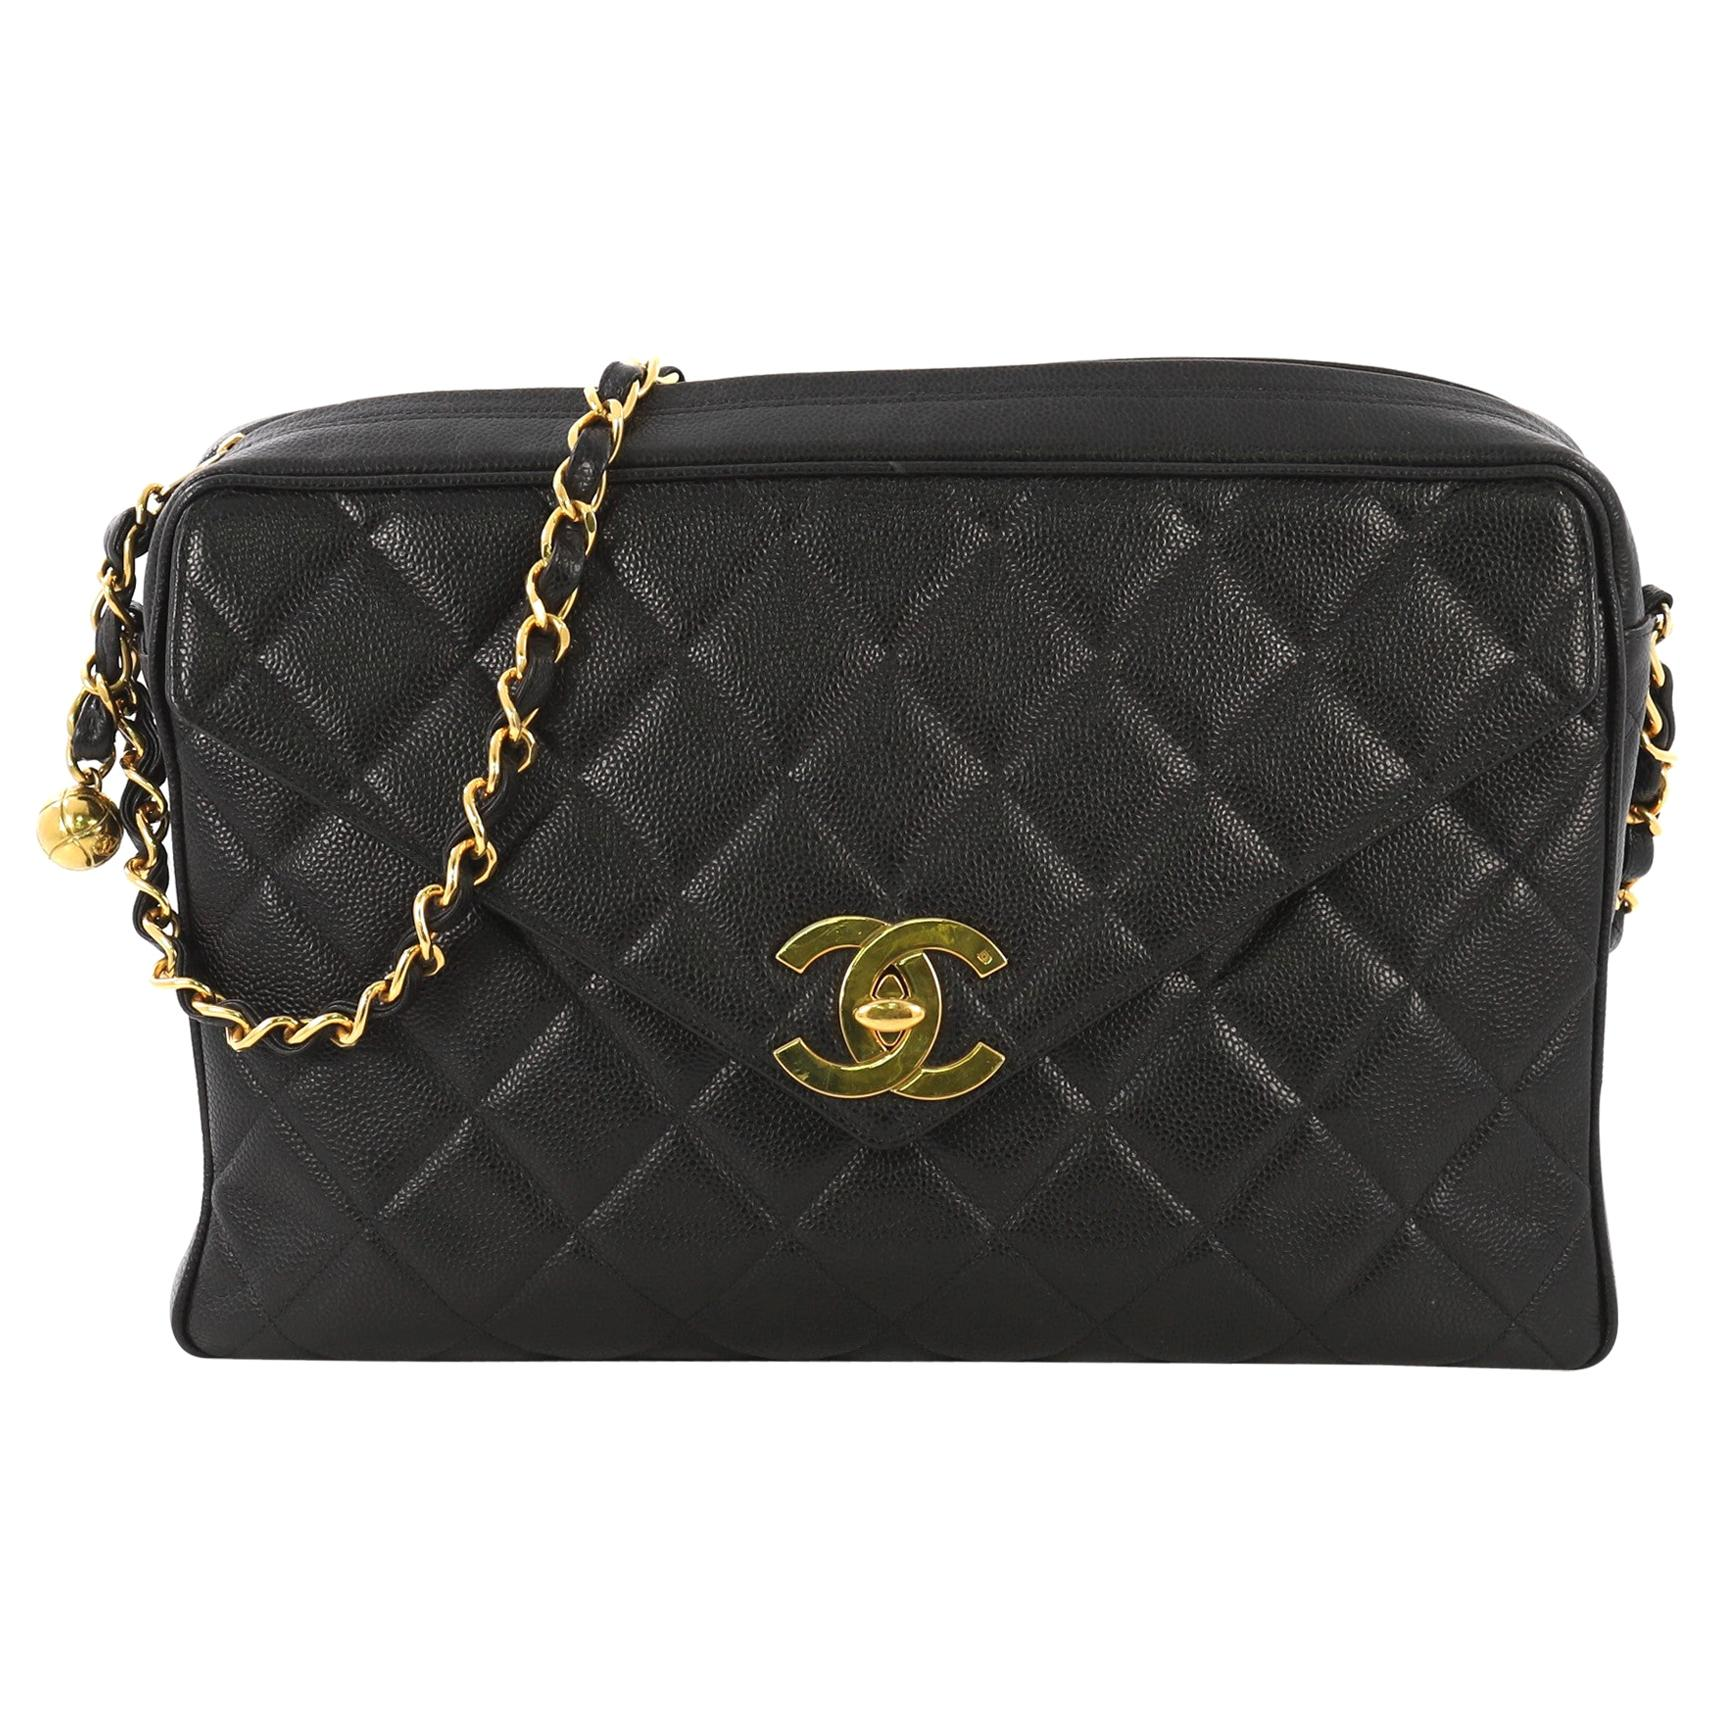 a037a0fca3bc Vintage Chanel Wallets and Small Accessories - 181 For Sale at 1stdibs